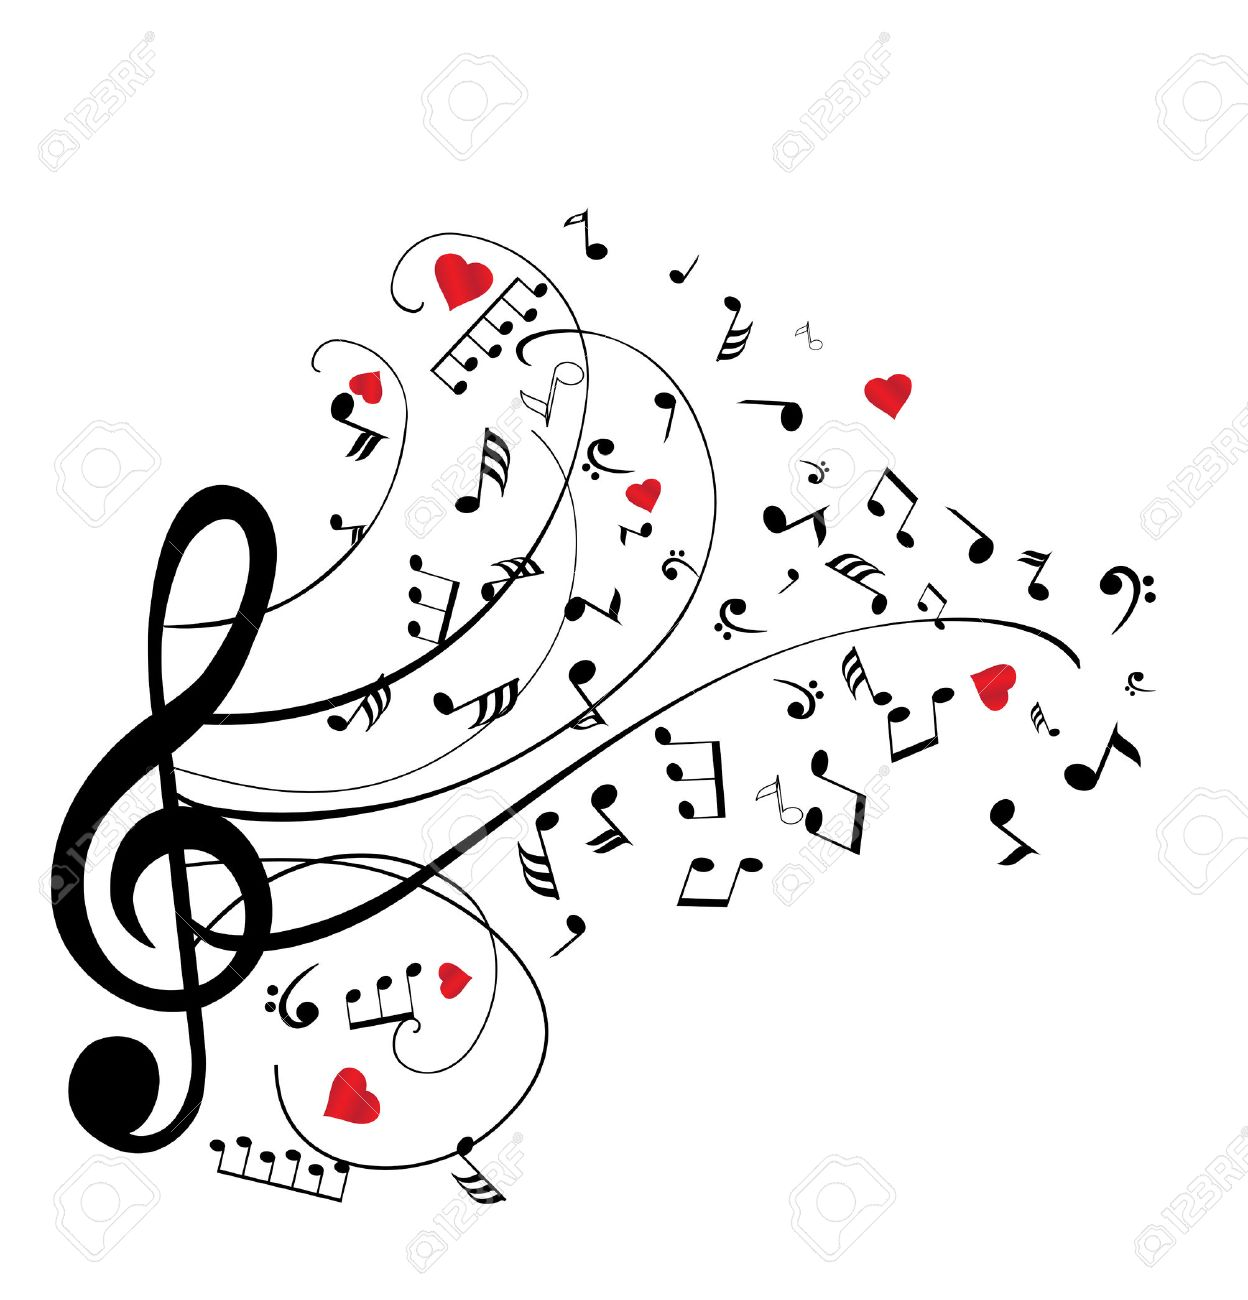 illustration of musical notes with hearts - 53255780